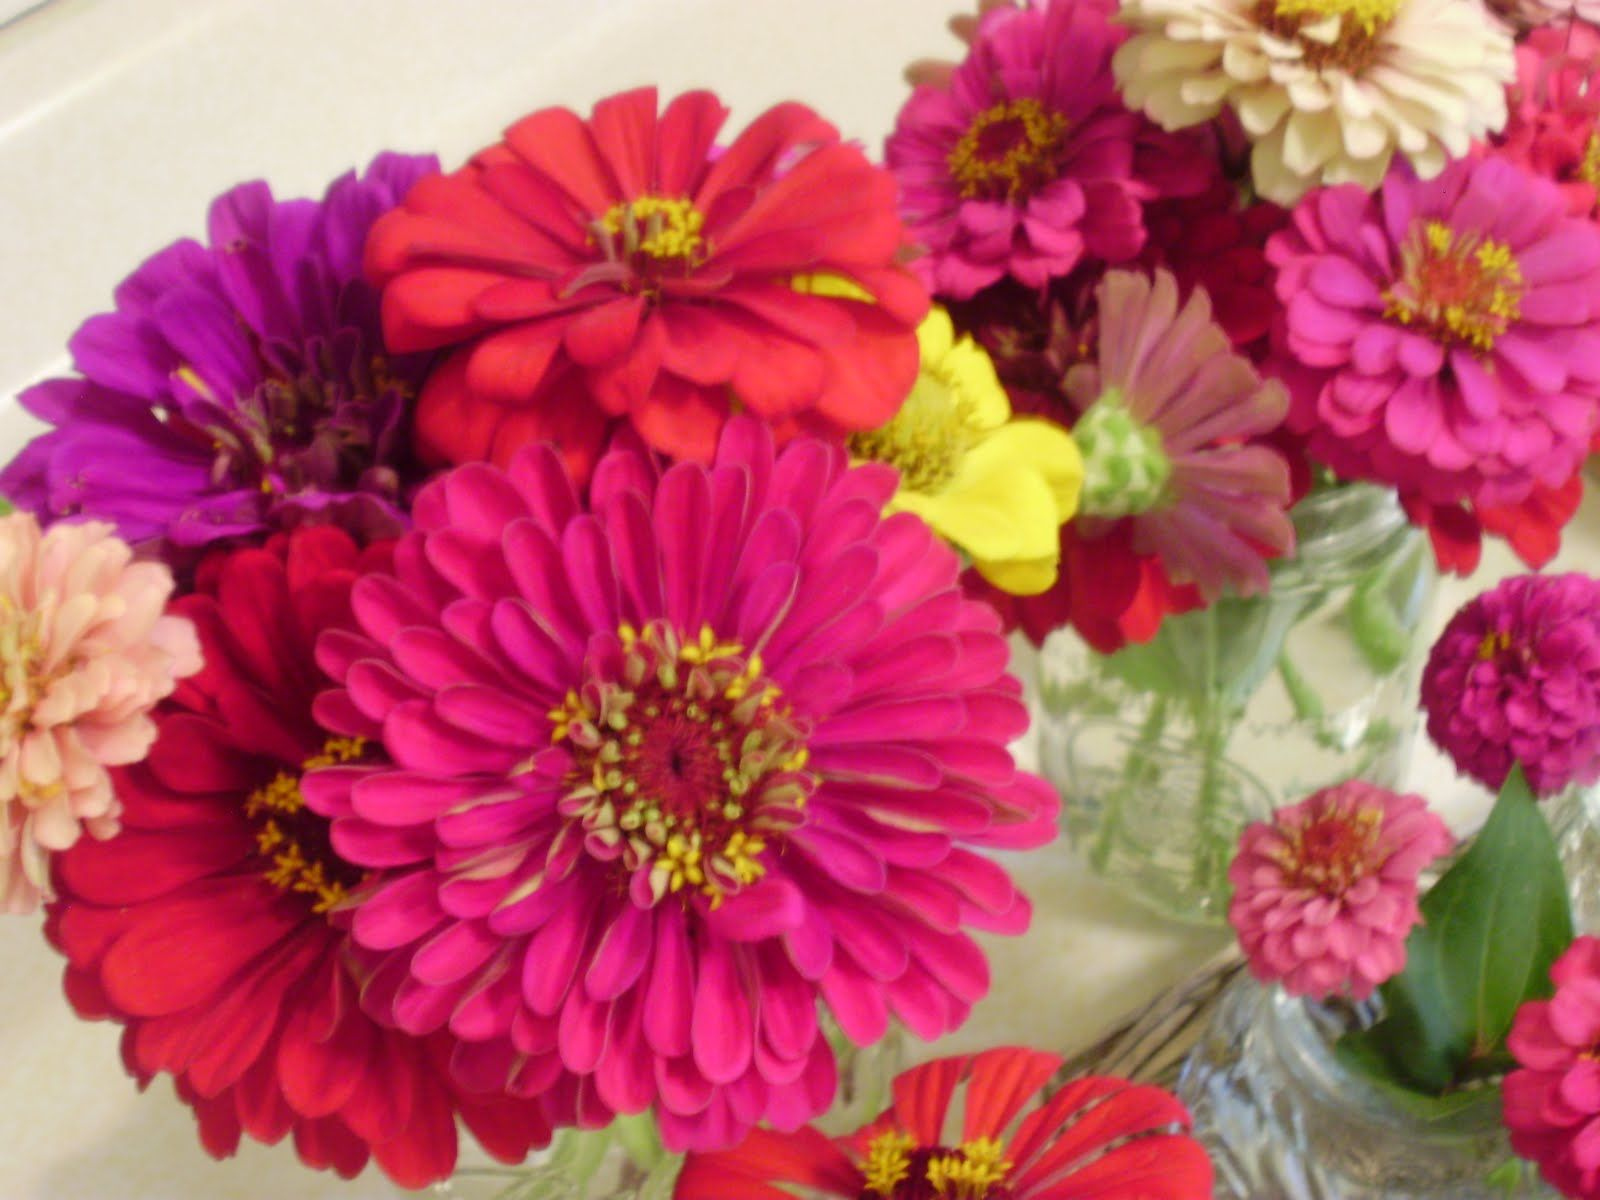 Majors flowers: growing zinnia at home from seed and caring for a plant 99